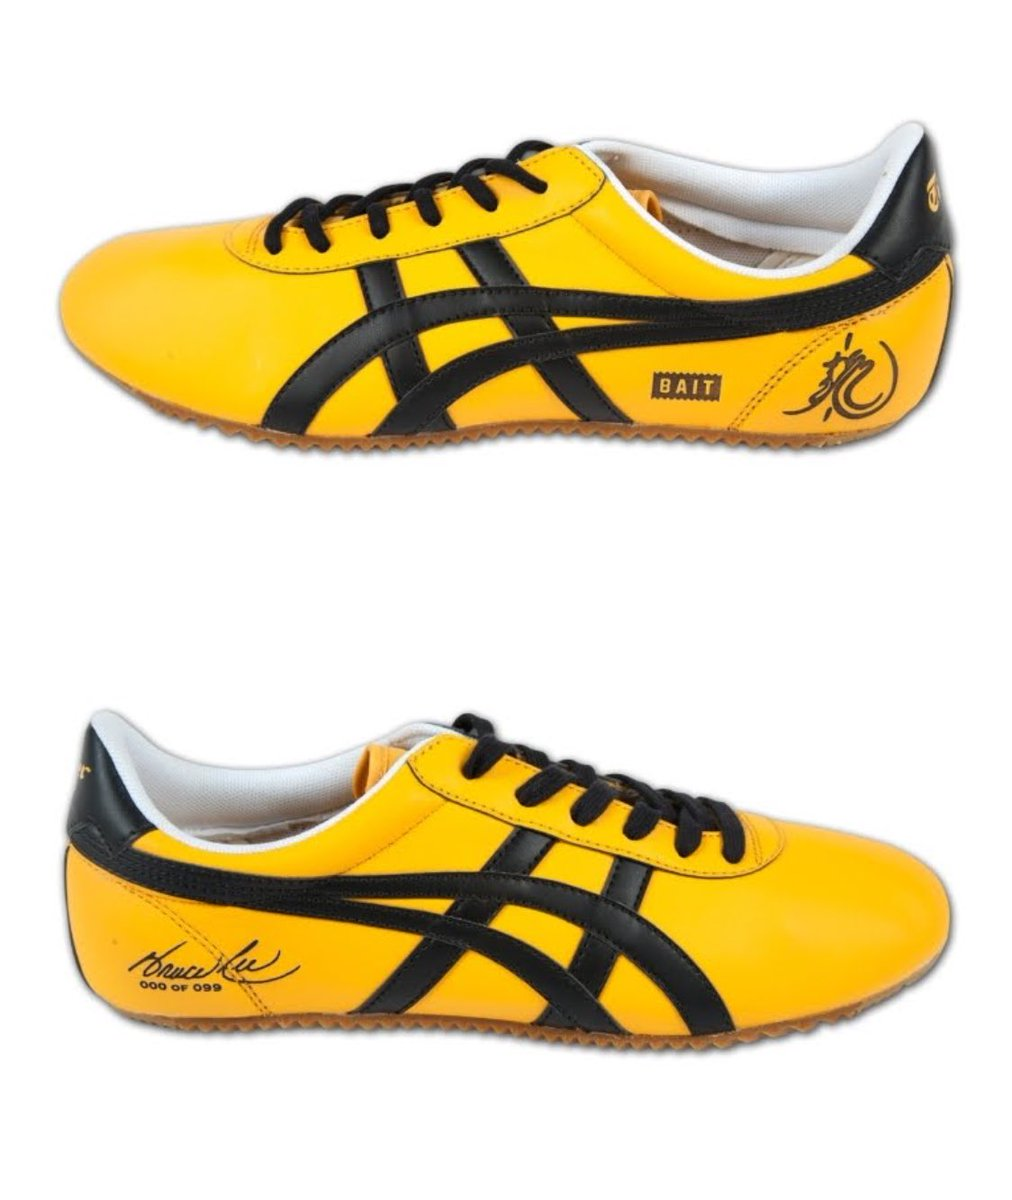 sports shoes 3c488 3056d Bruce Lee The Dragon on Twitter: